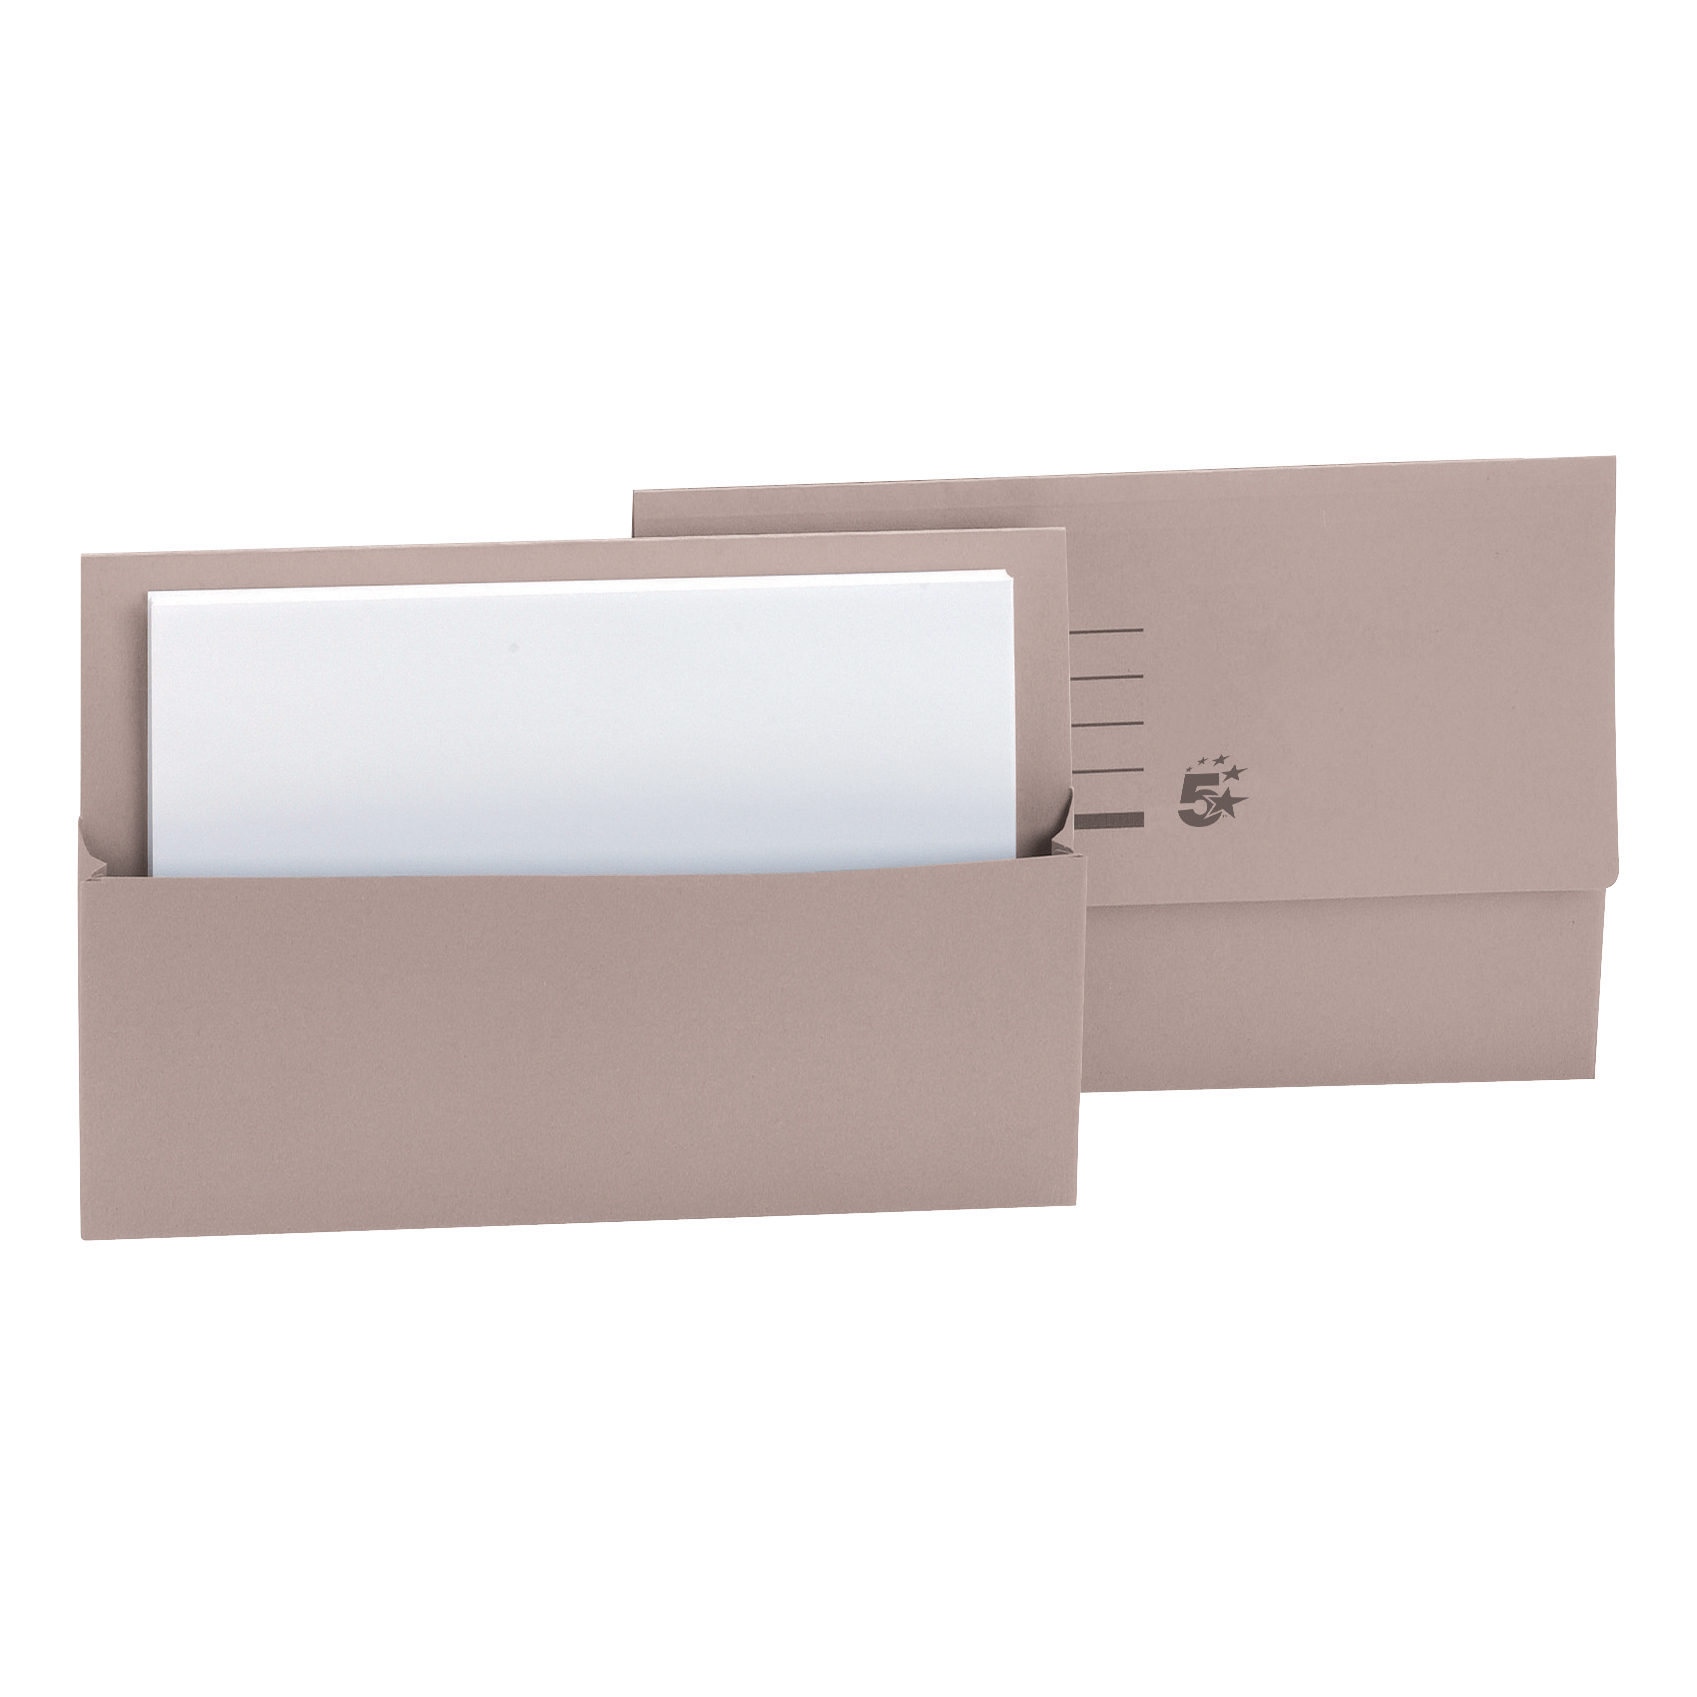 5 Star Office Document Wallet Half Flap 250gsm Capacity 32mm Foolscap Buff [Pack 50]